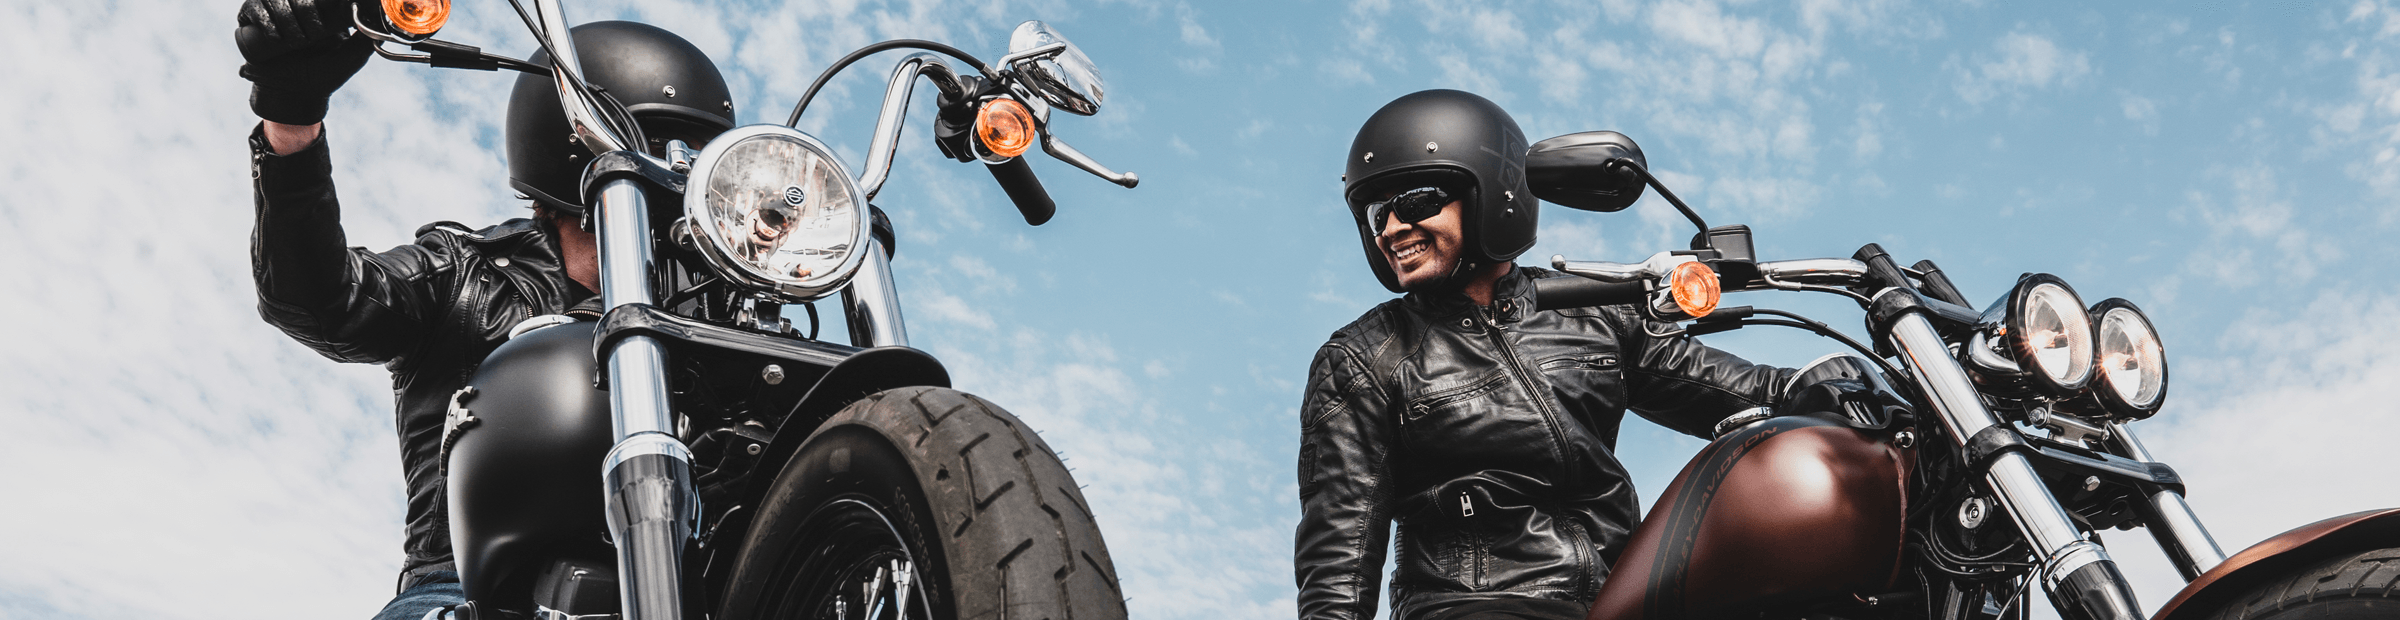 Dealer Specials at Harley-Davidson® of Madison